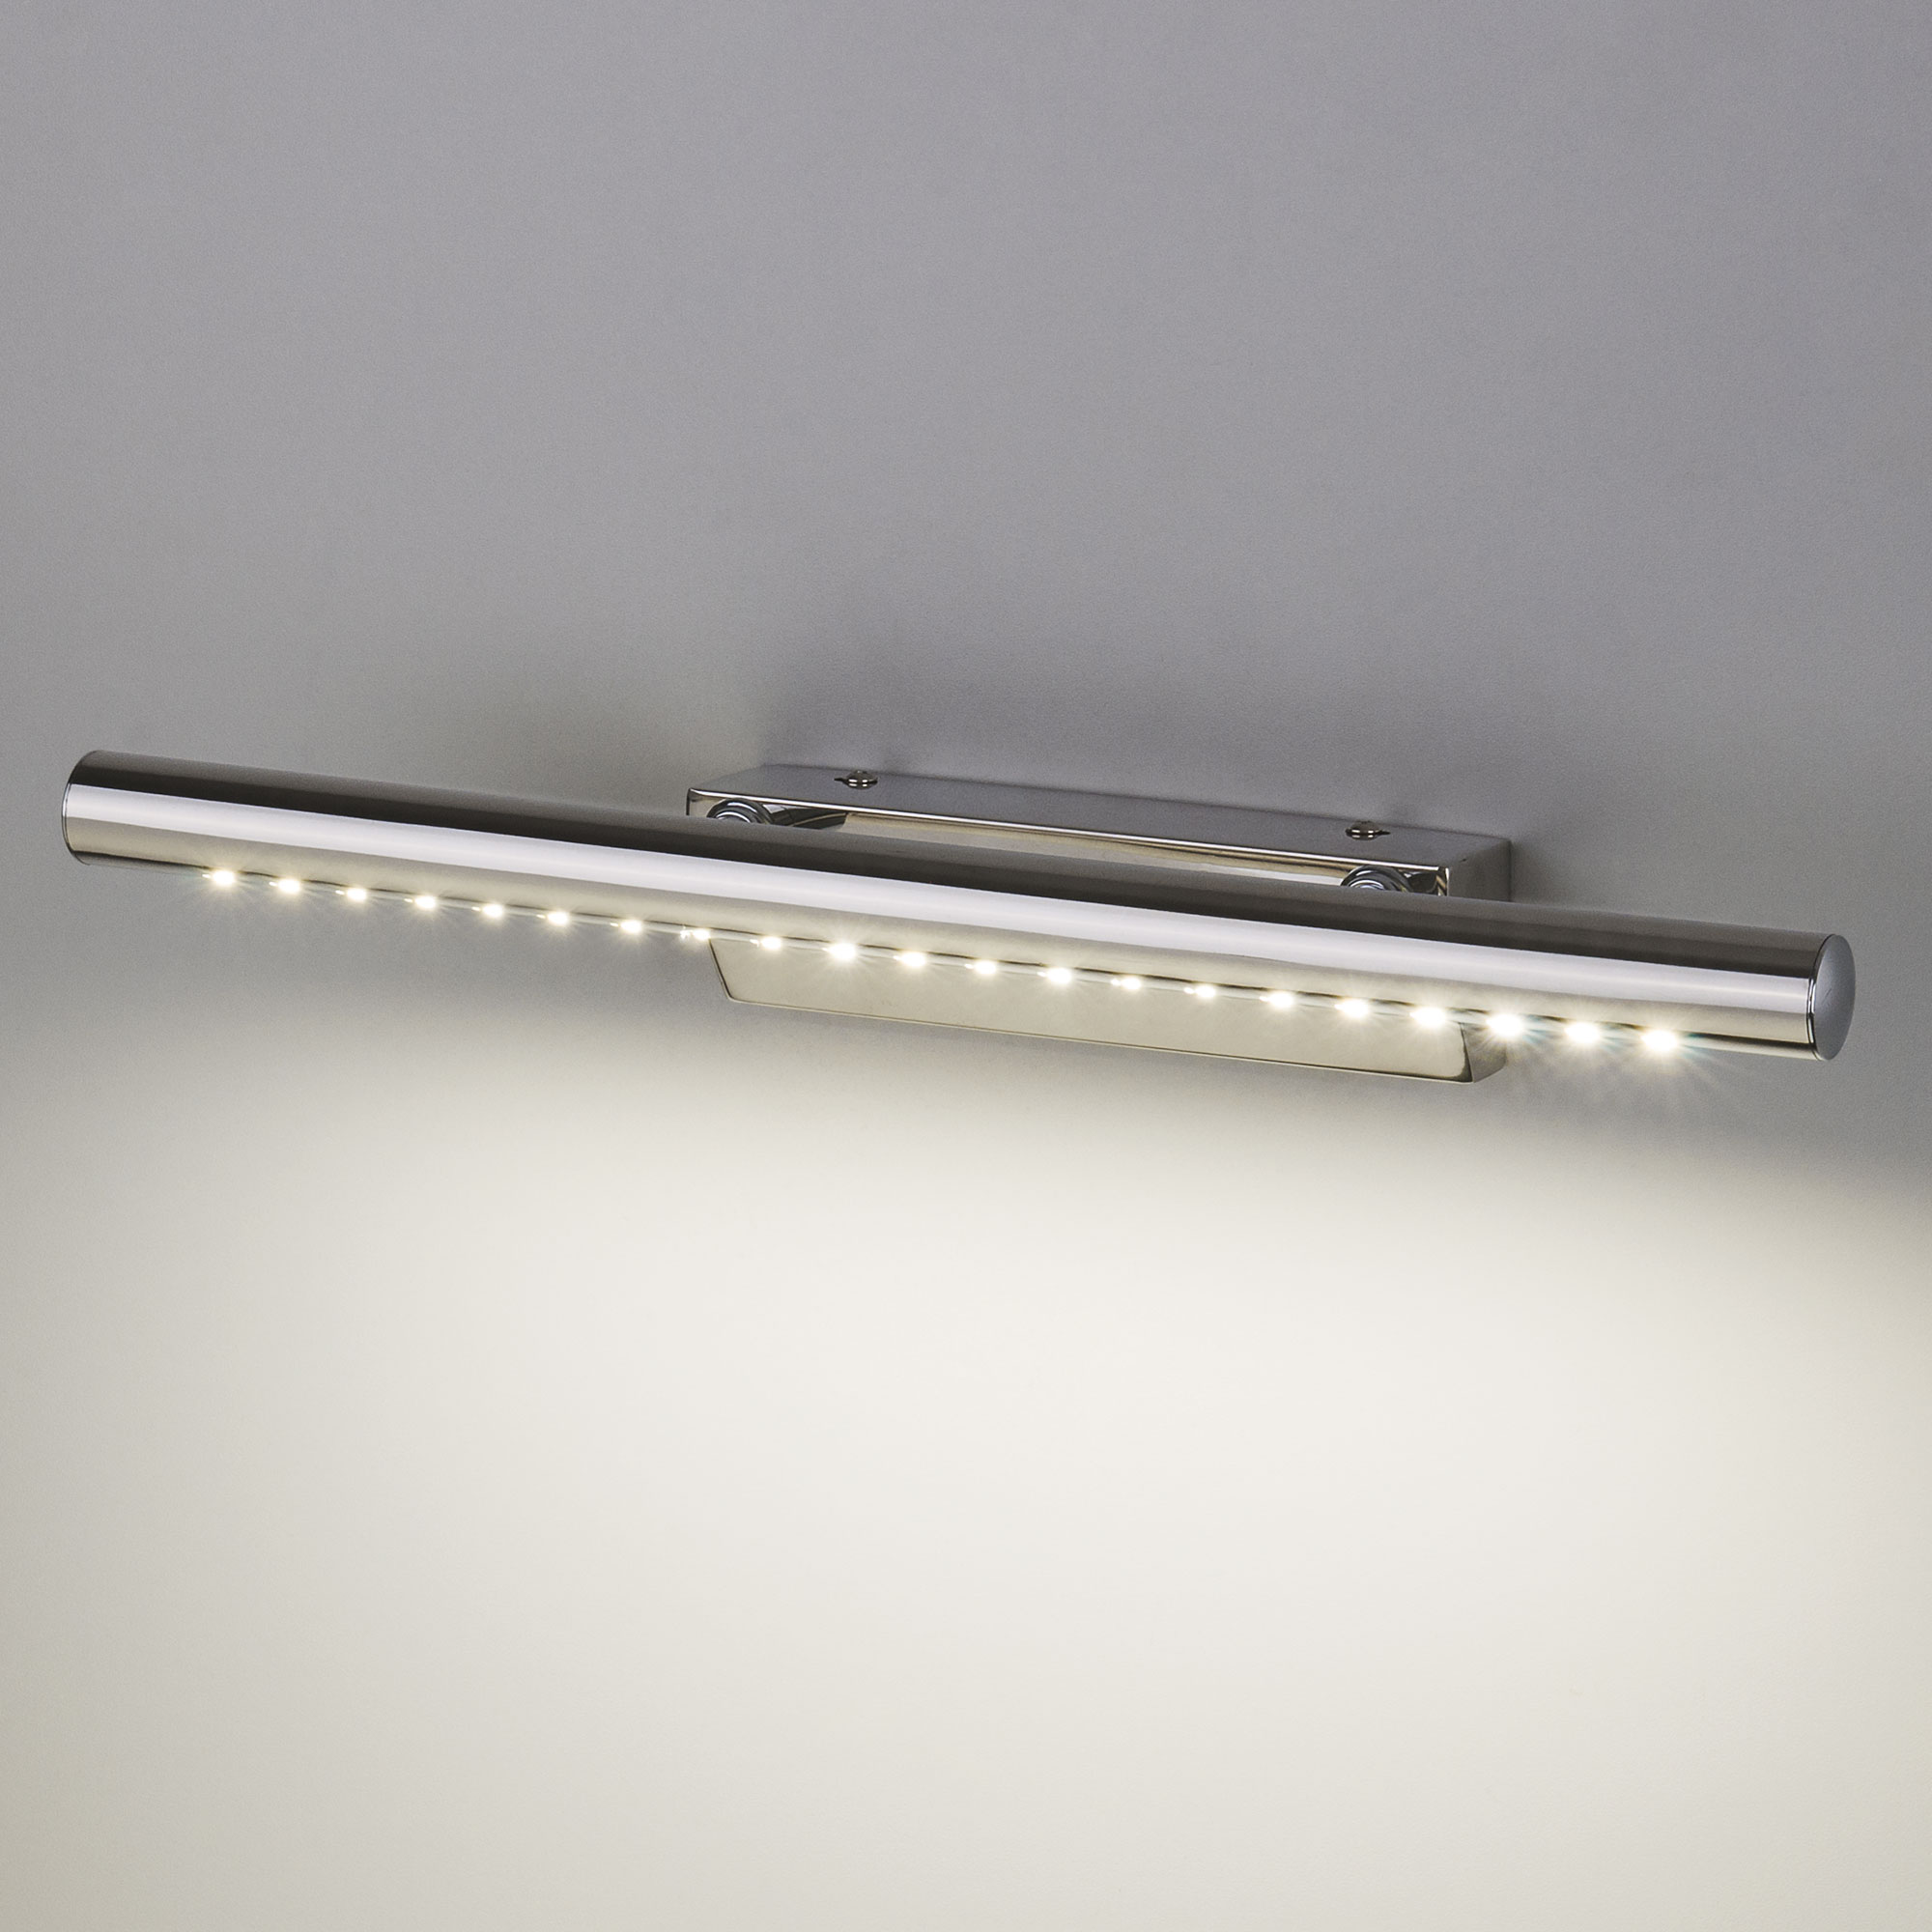 Фото товара Trinity Neo LED хром (MRL LED 5W 1001 IP20) 5W Eurosvet